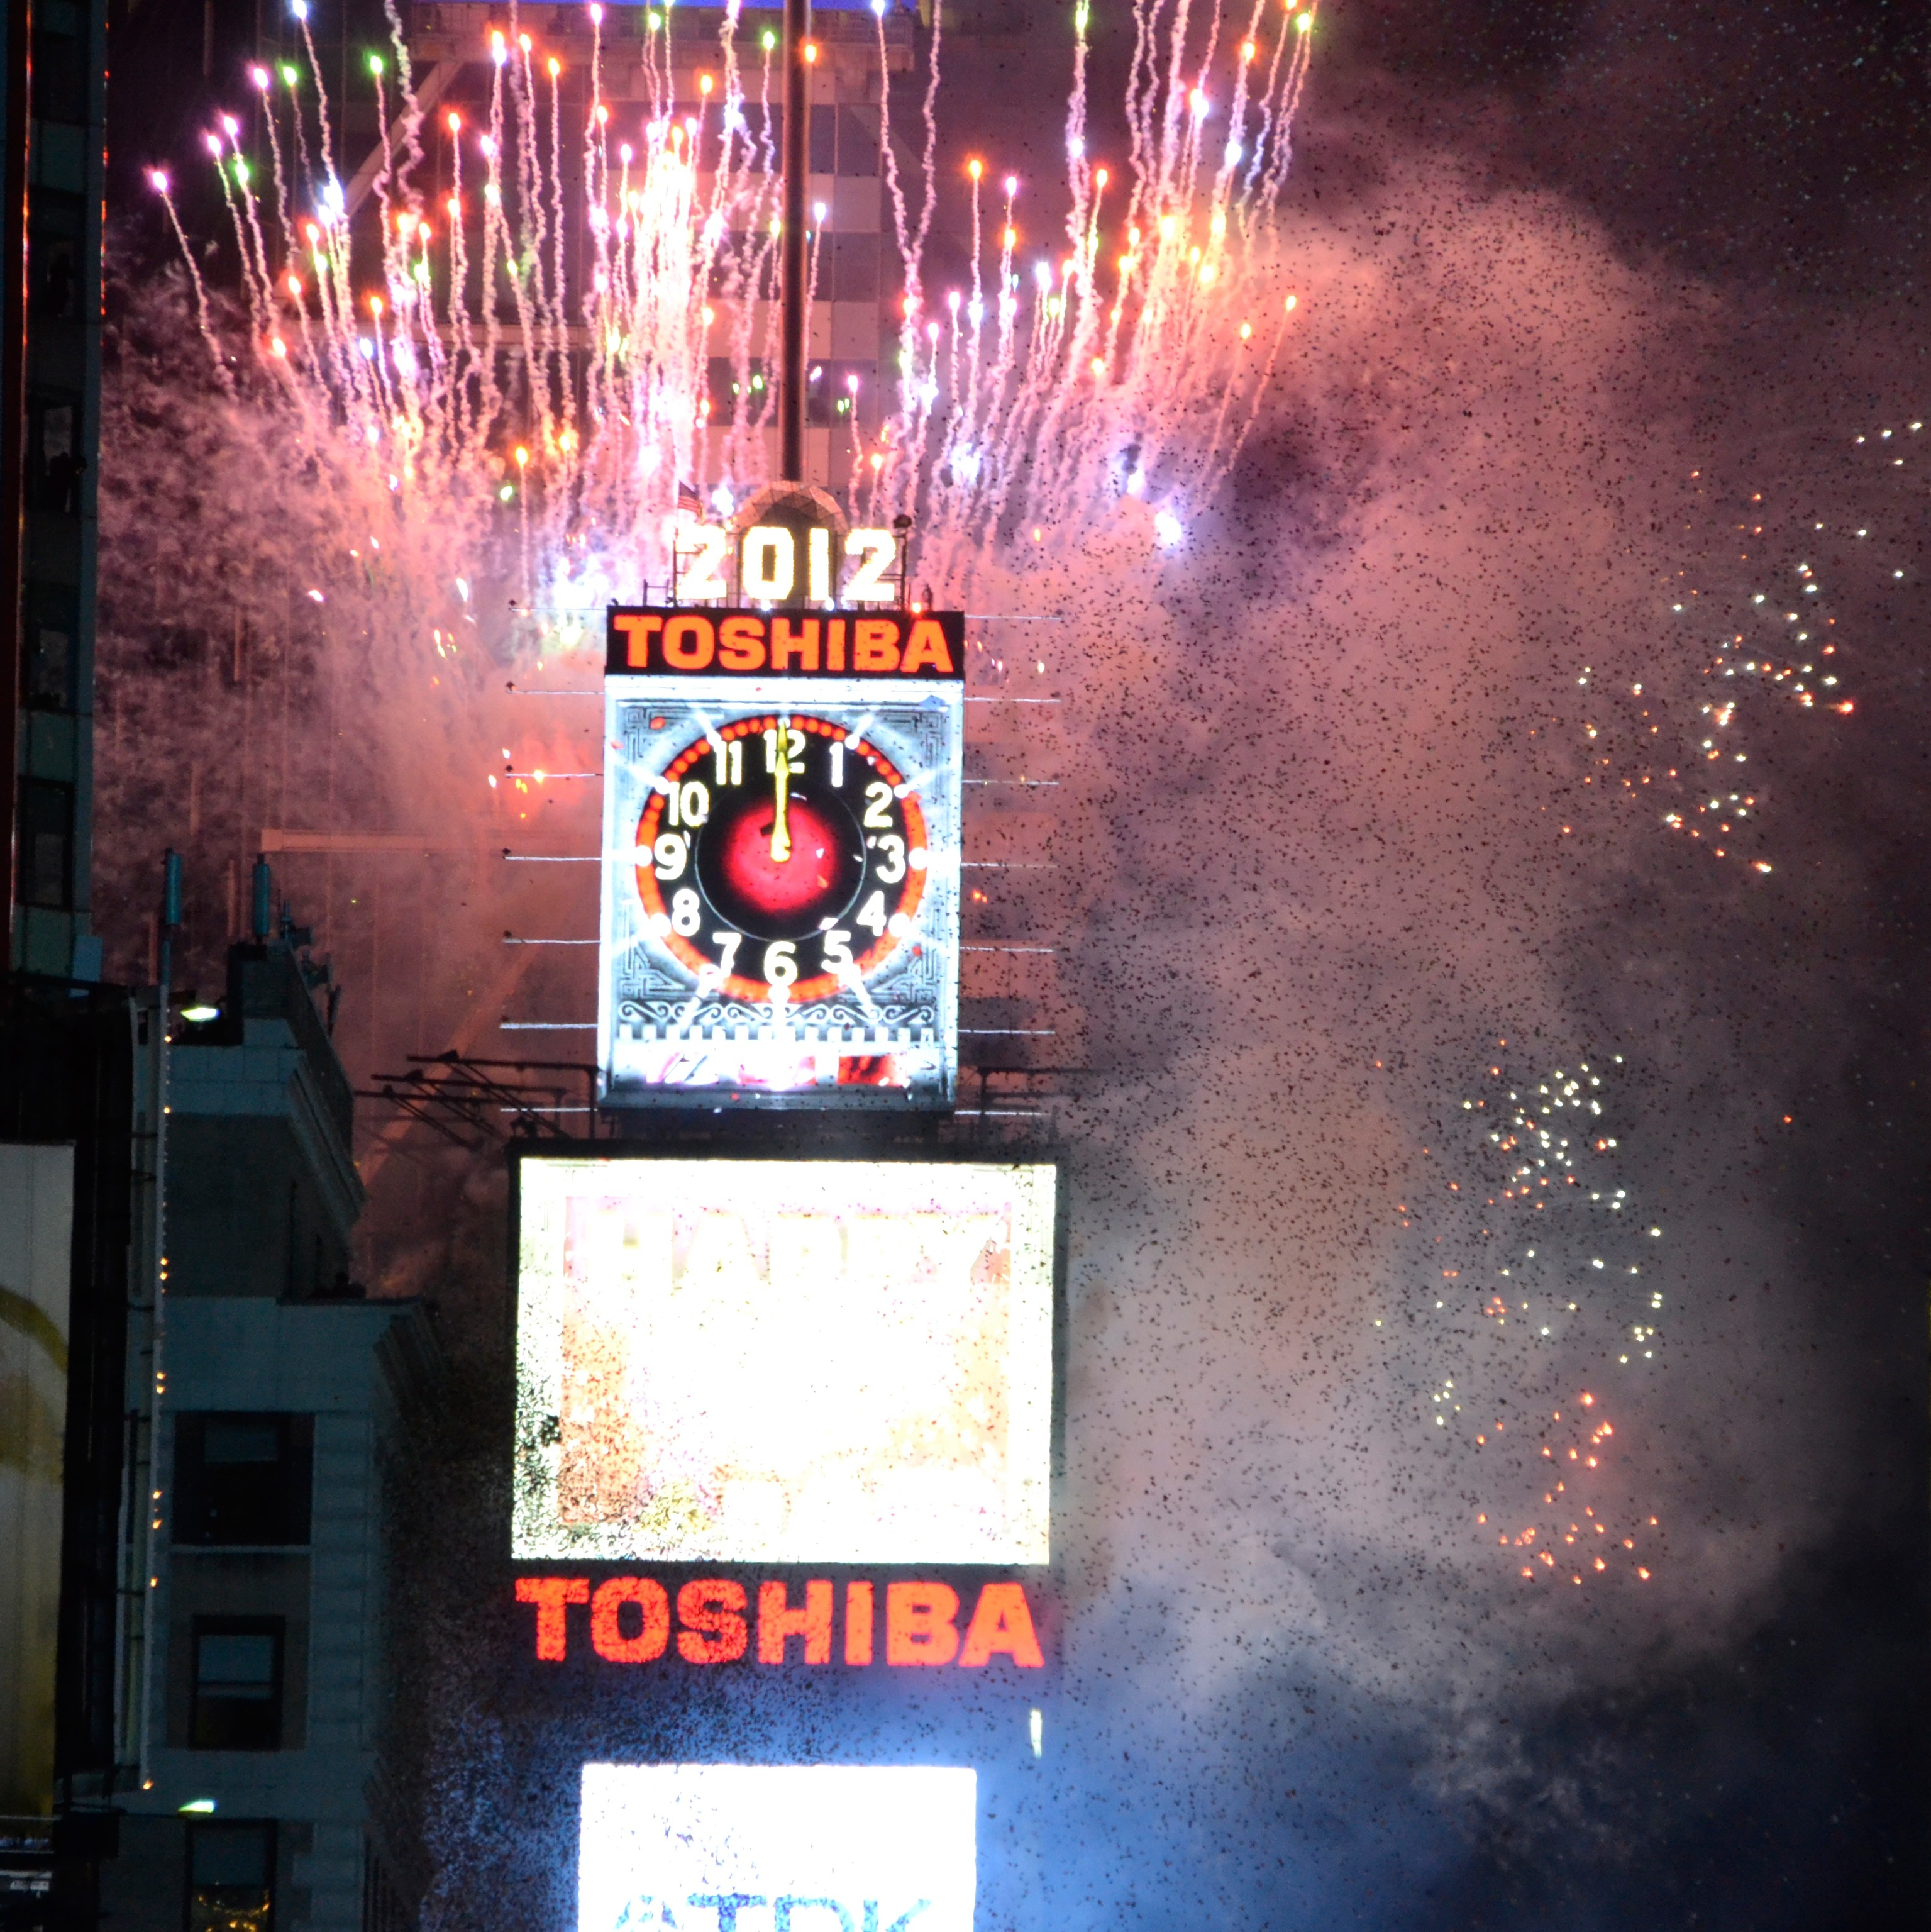 File New Year Ball Drop Event for 2012 at Times Square jpg     File New Year Ball Drop Event for 2012 at Times Square jpg